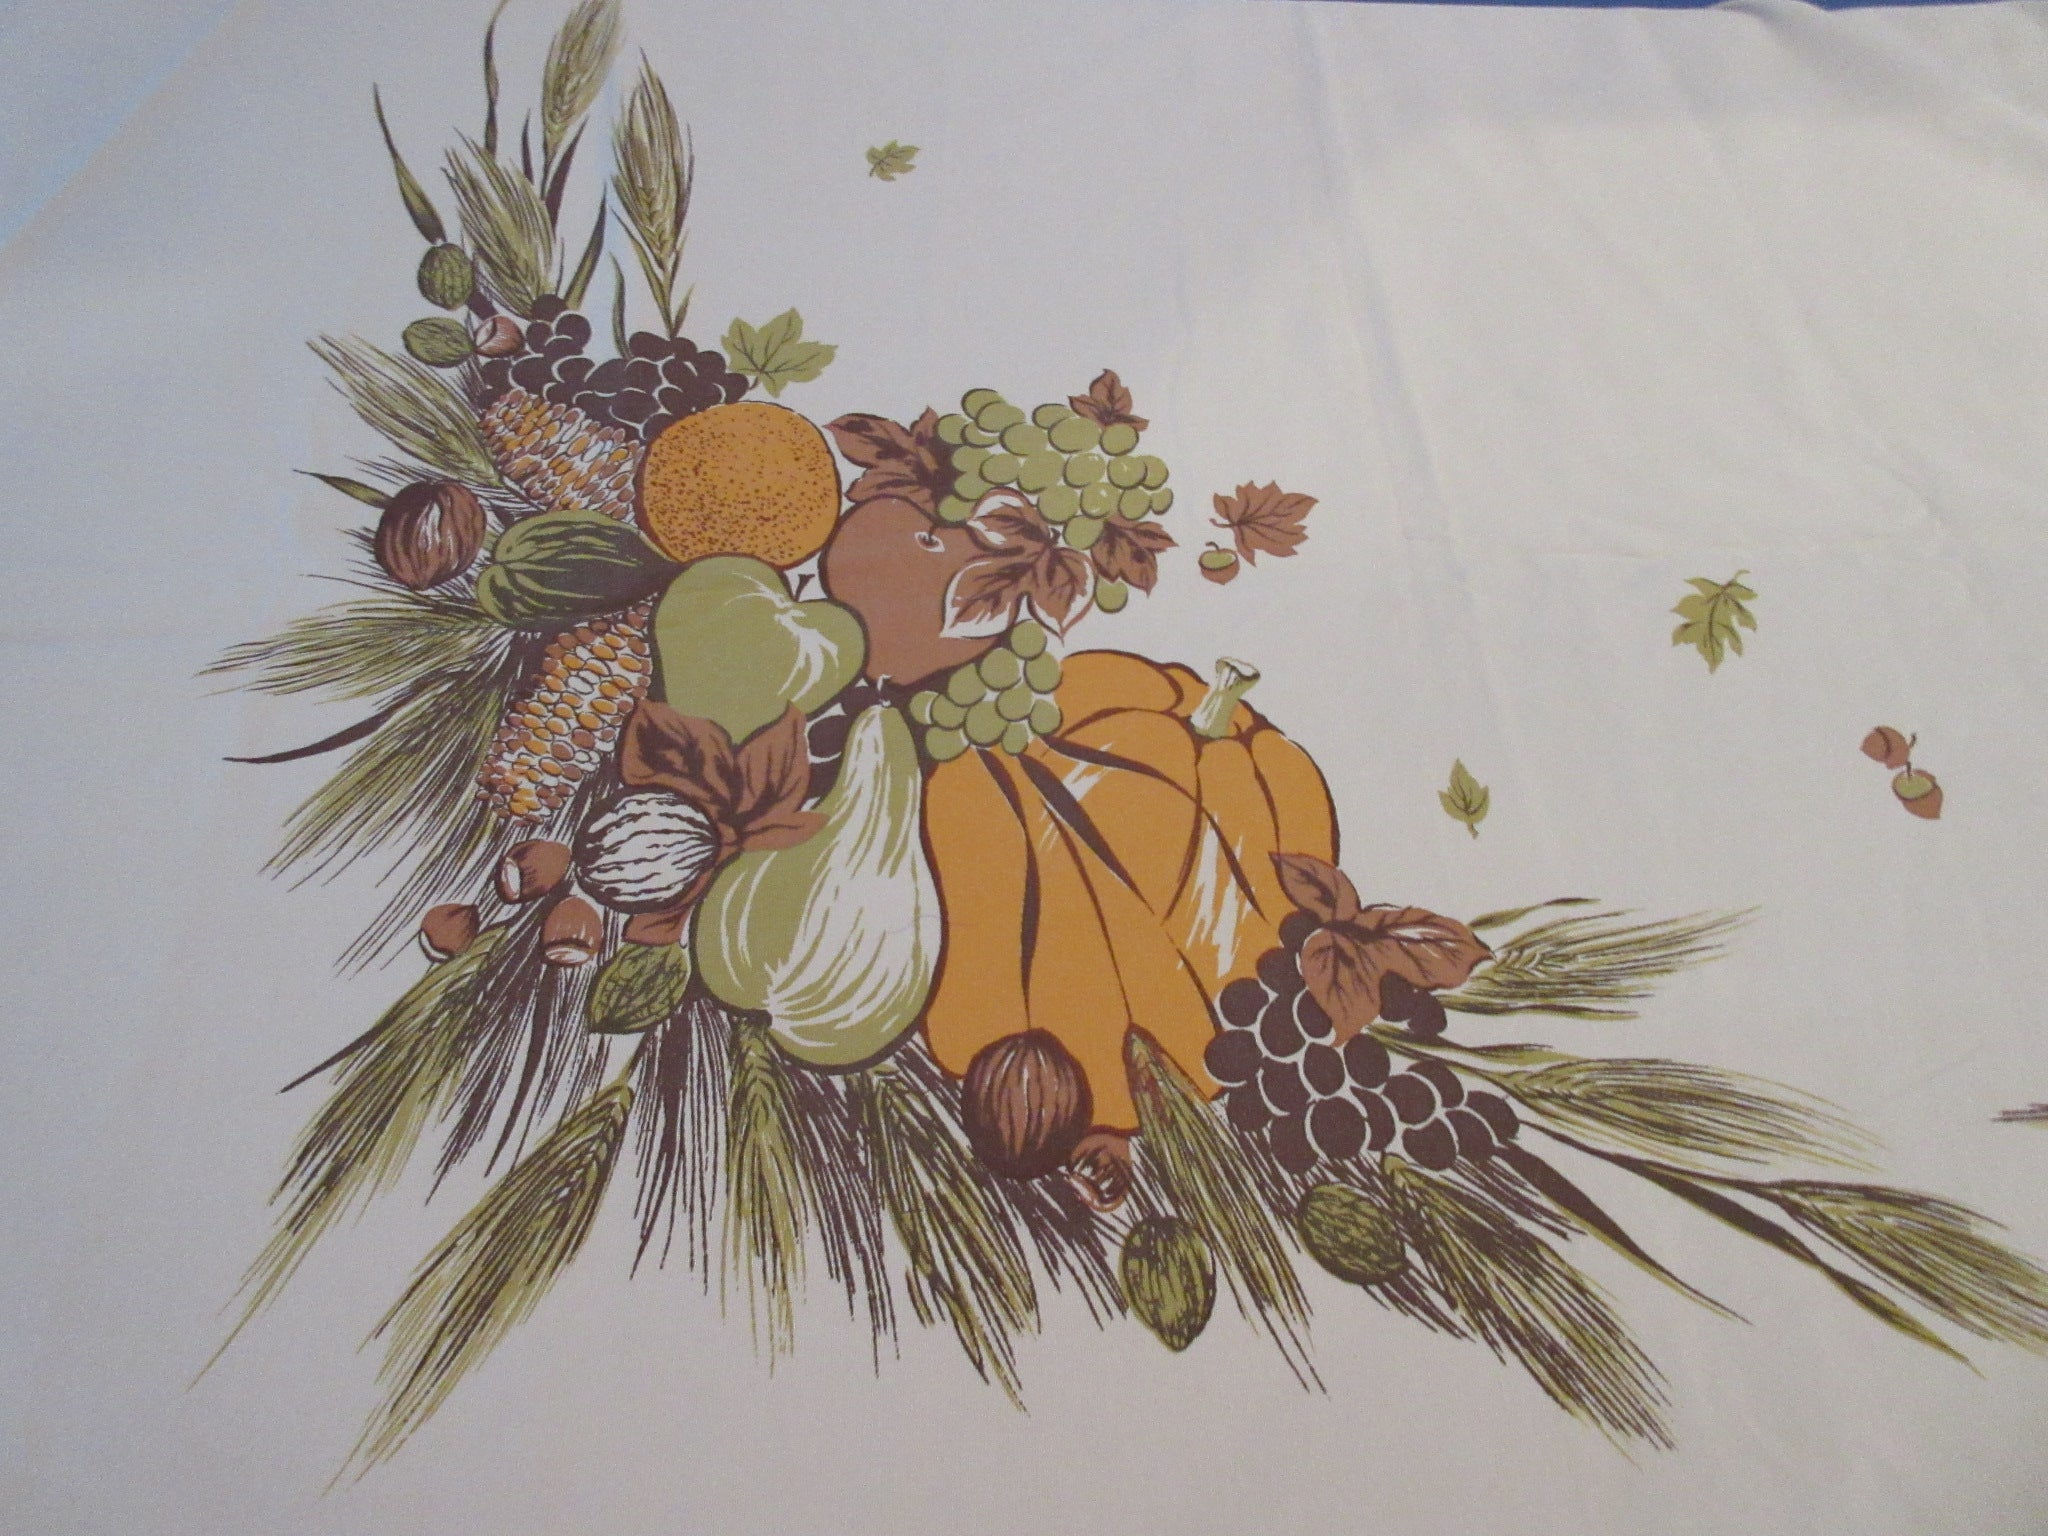 CHP Pumpkins Gourds Fall Autumn Novelty Vintage Printed Tablecloth (83 X 60)